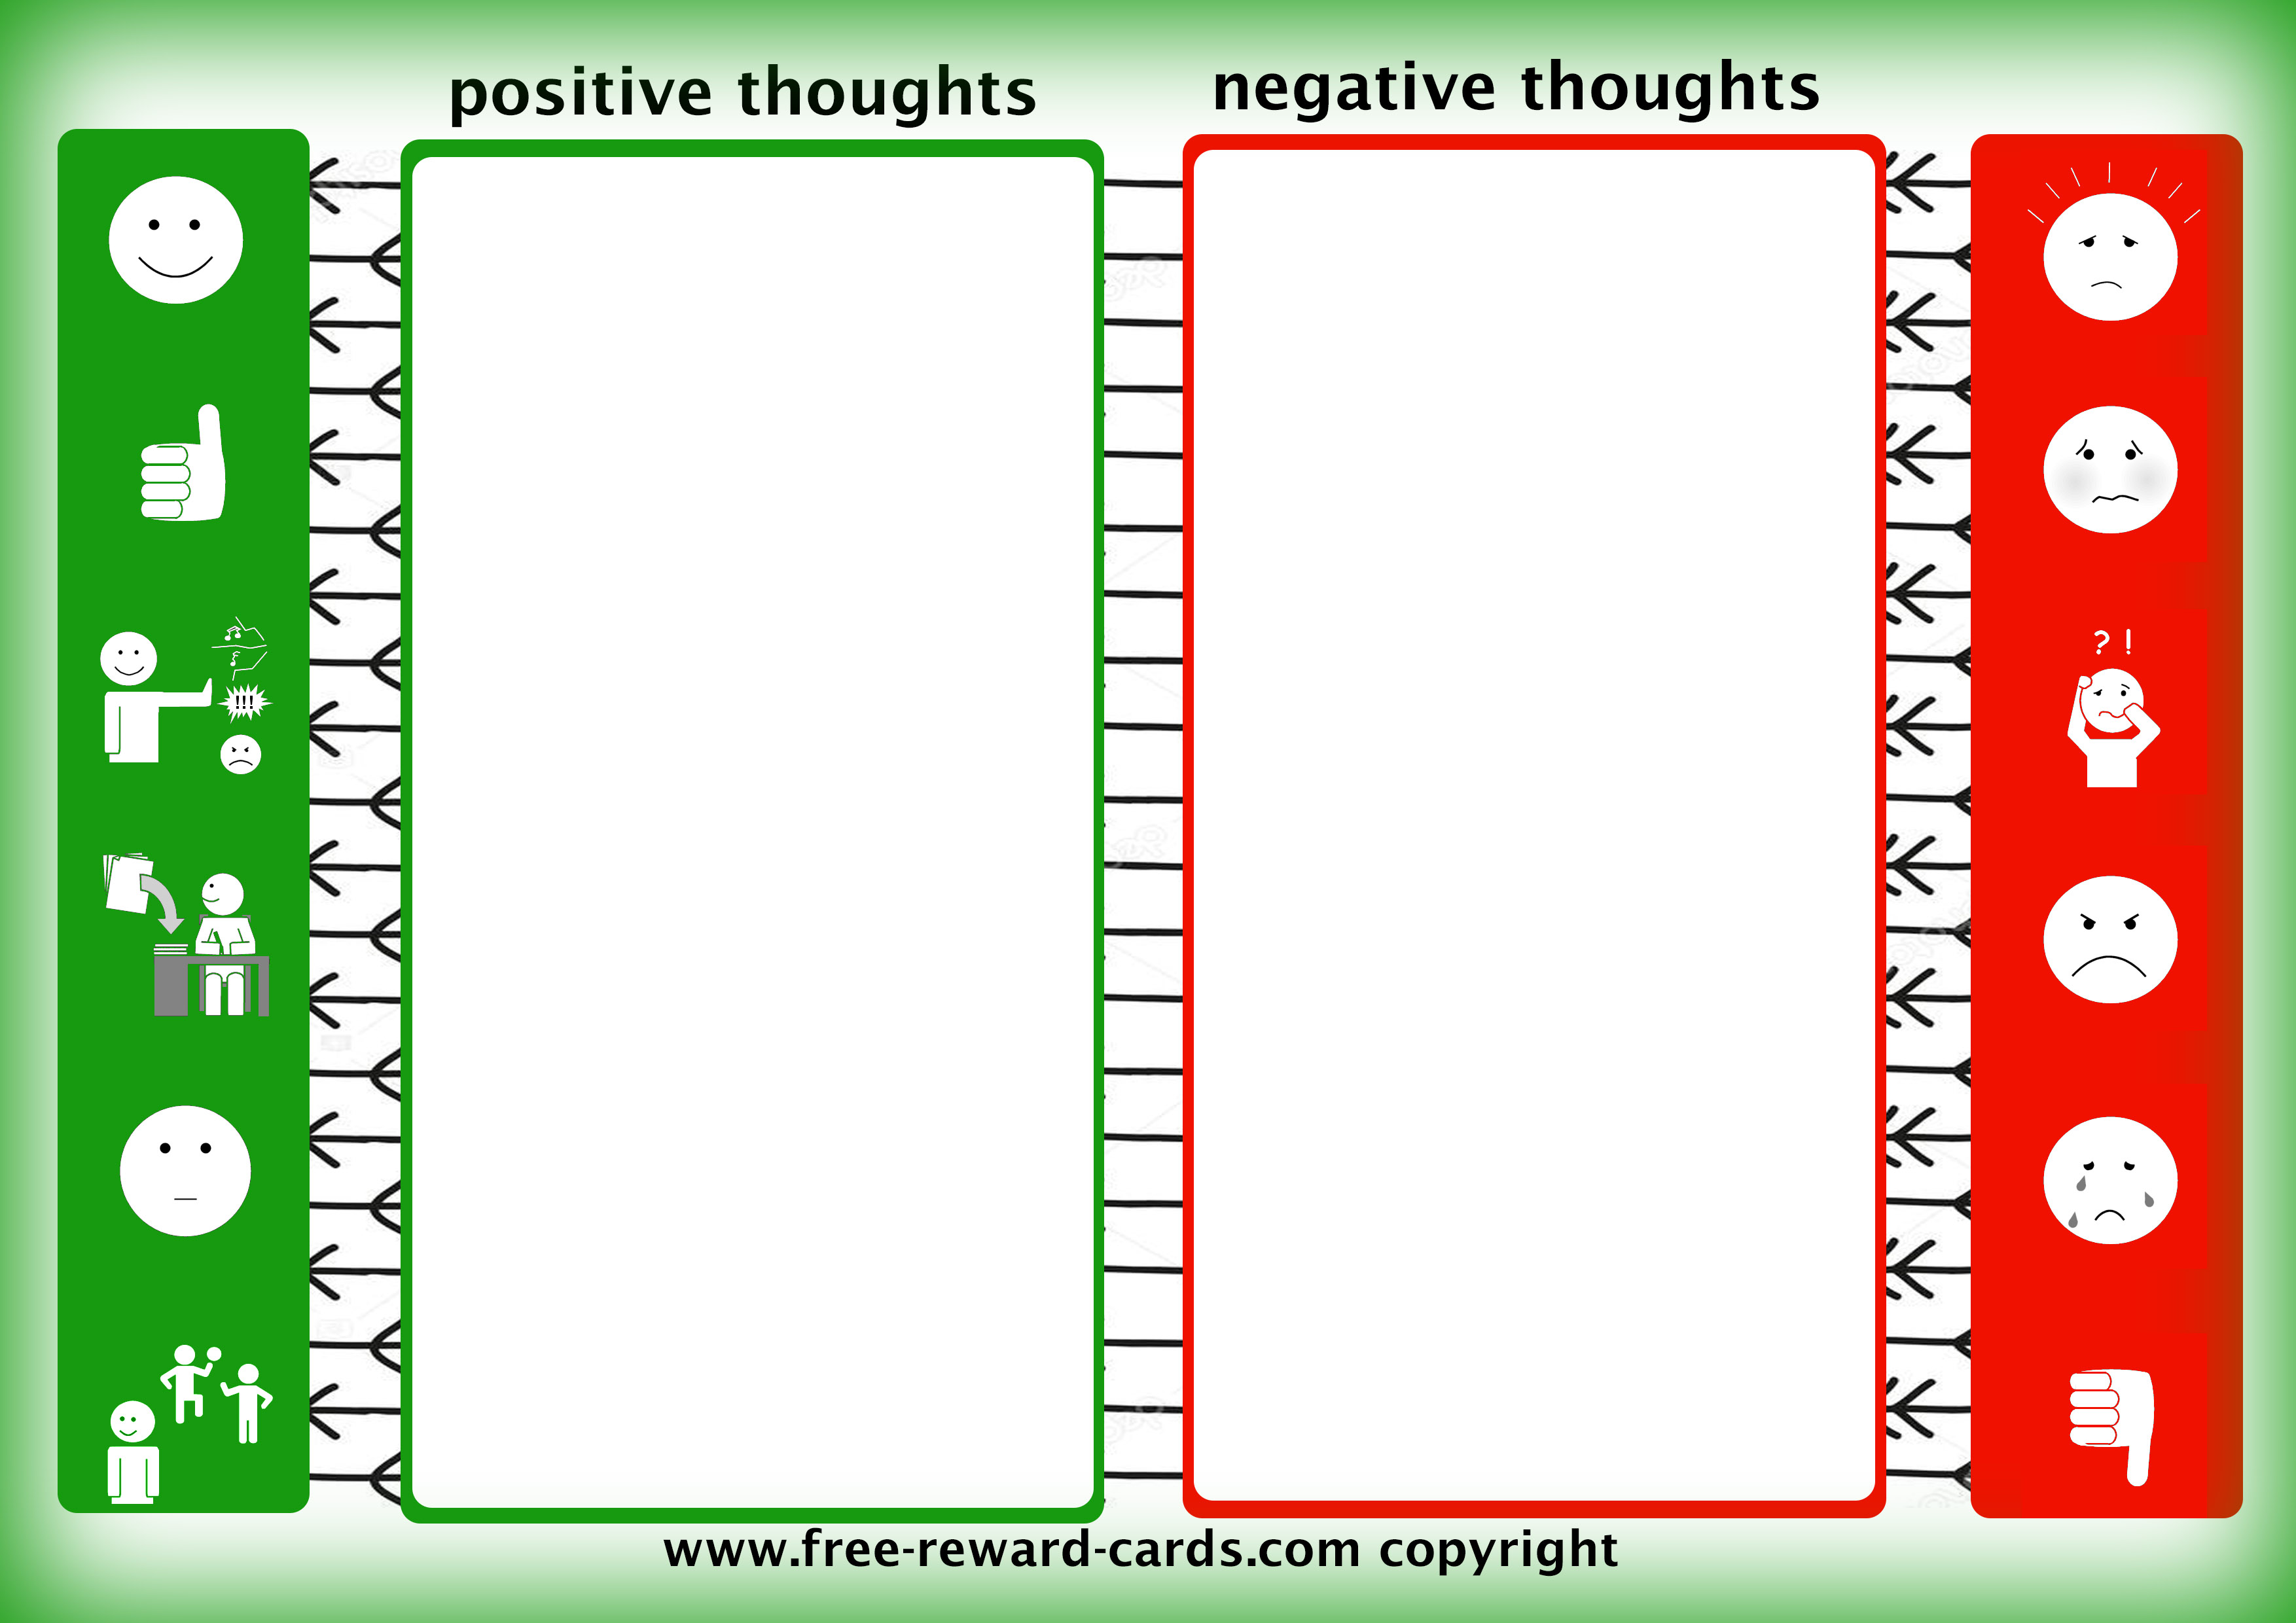 Convert Negative Thoughts Into Positive Thoughts Website